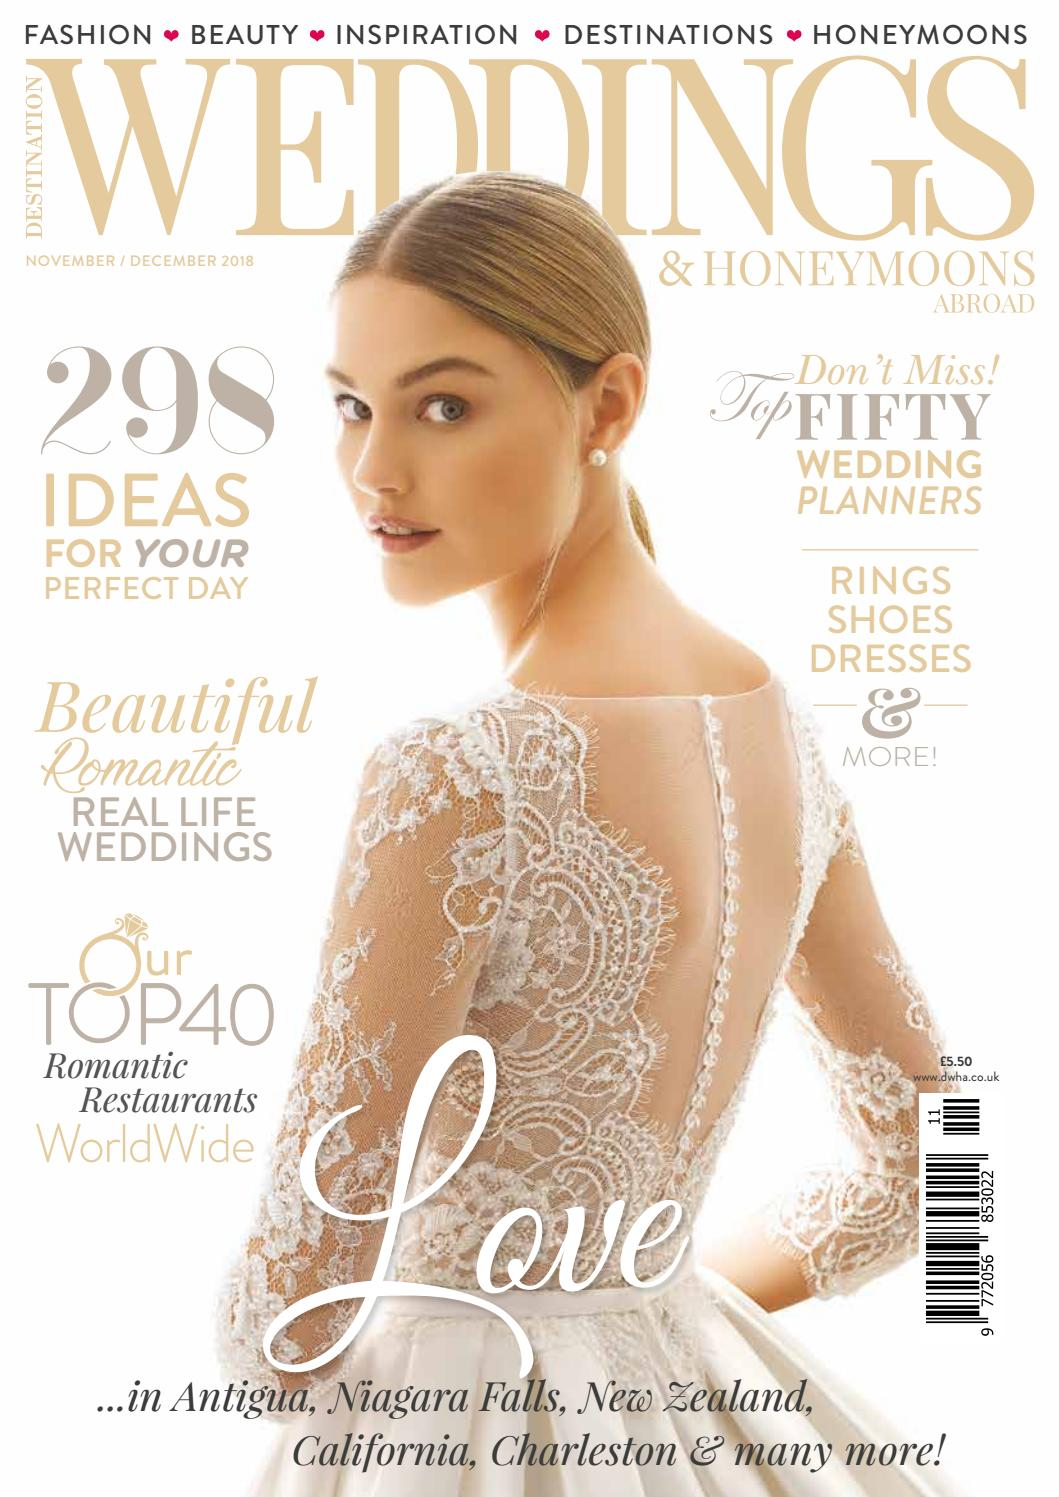 0a312d188f54 November   December 2018 by Destination Weddings and Honeymoons Abroad -  issuu